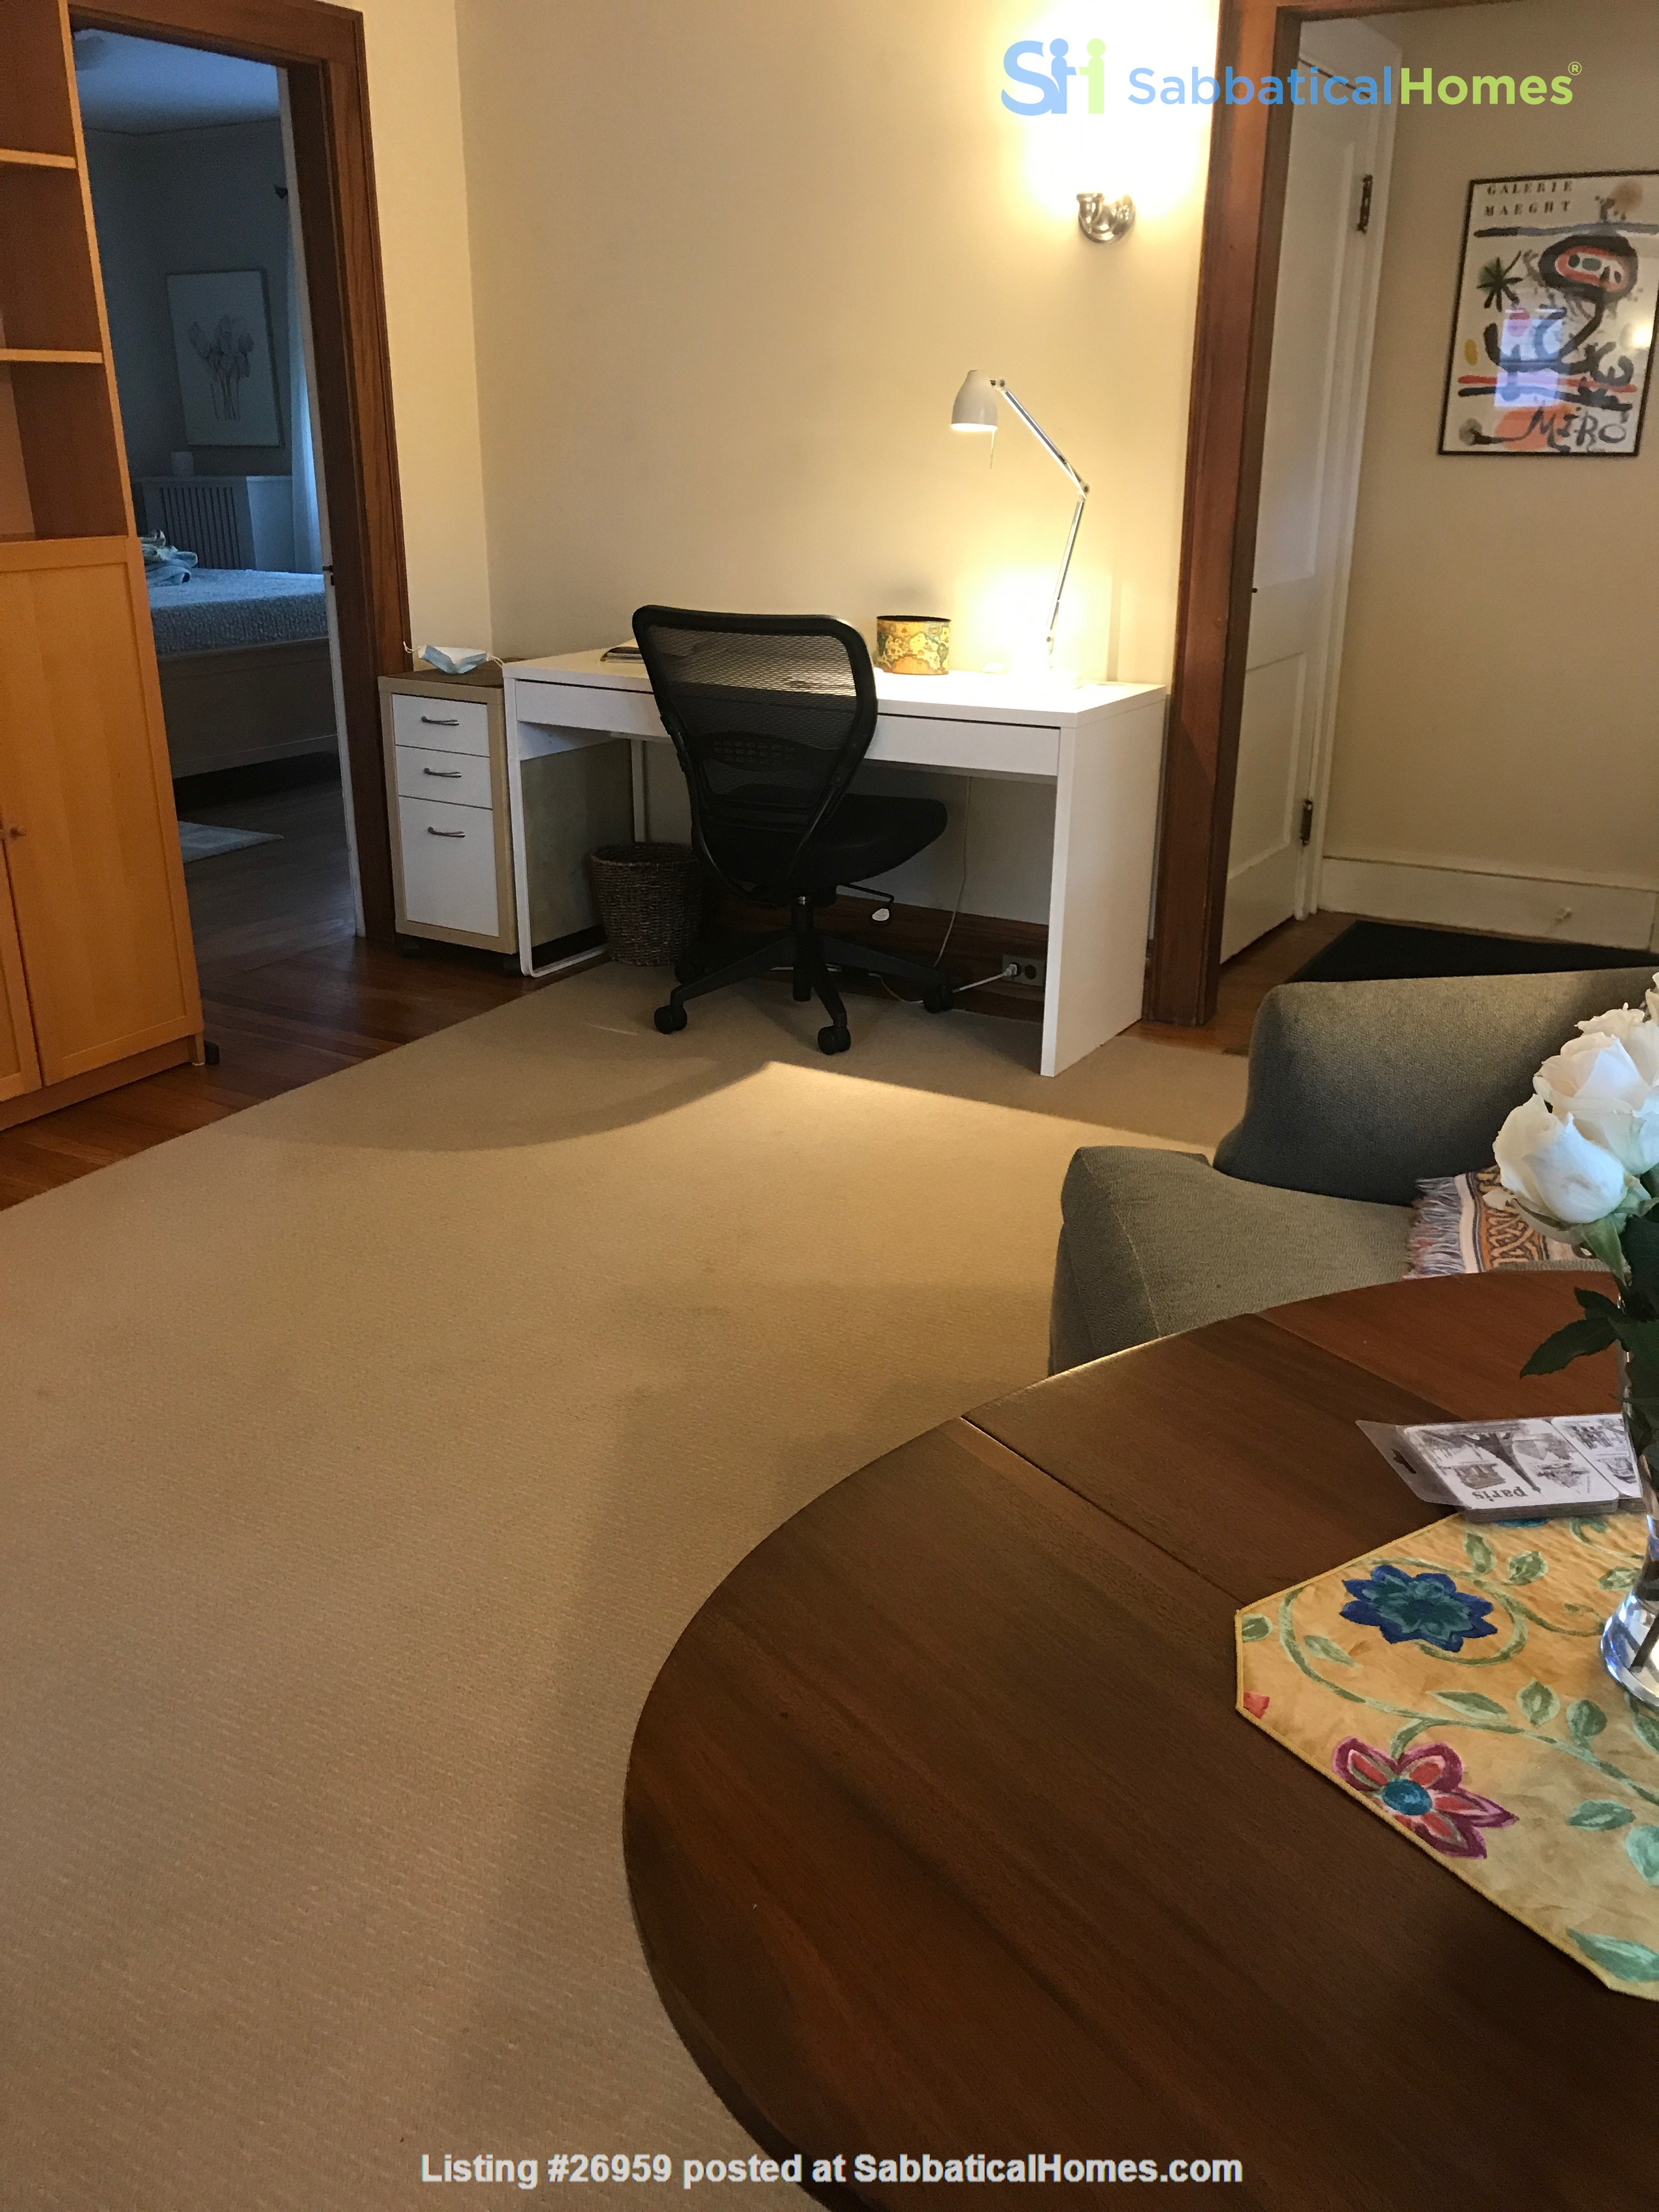 Furnished, Sunny, 2-bdrm apt 2.5 miles to Hrvd Sq., quiet safe neighborhood Home Rental in Belmont, Massachusetts, United States 2